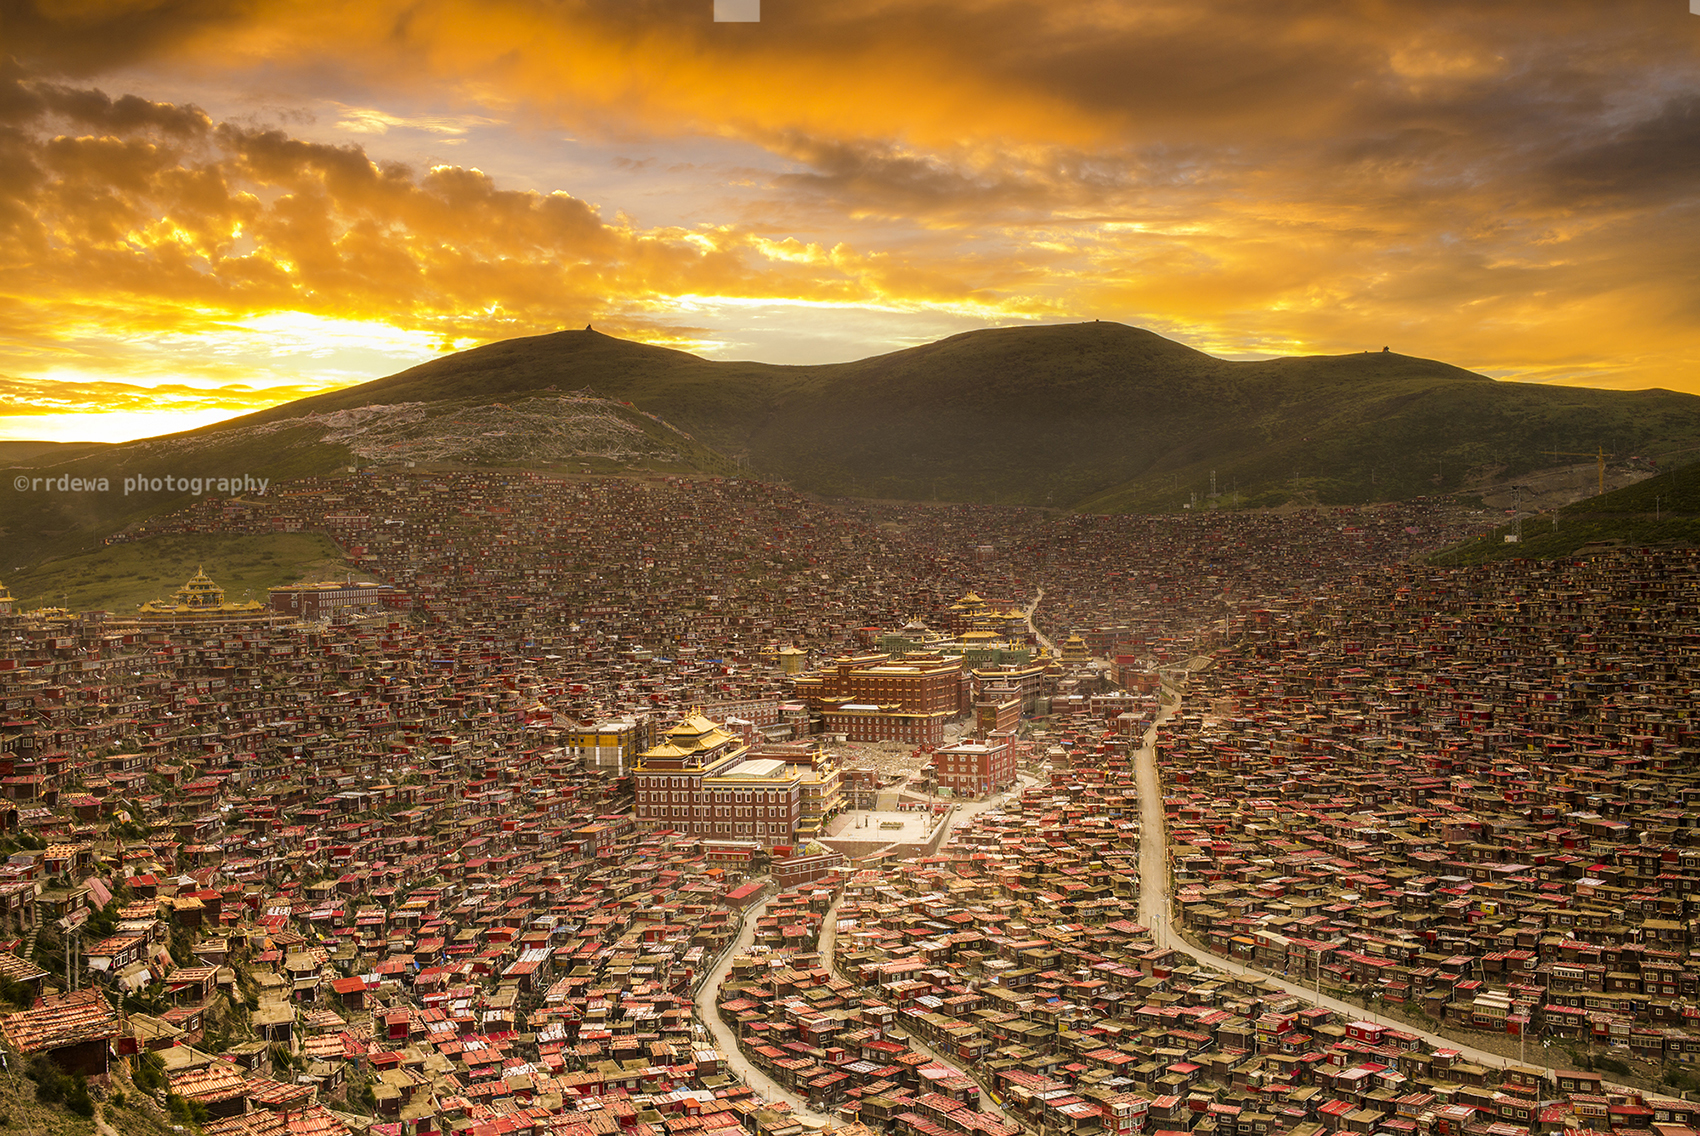 Sunrise at Larung Gar